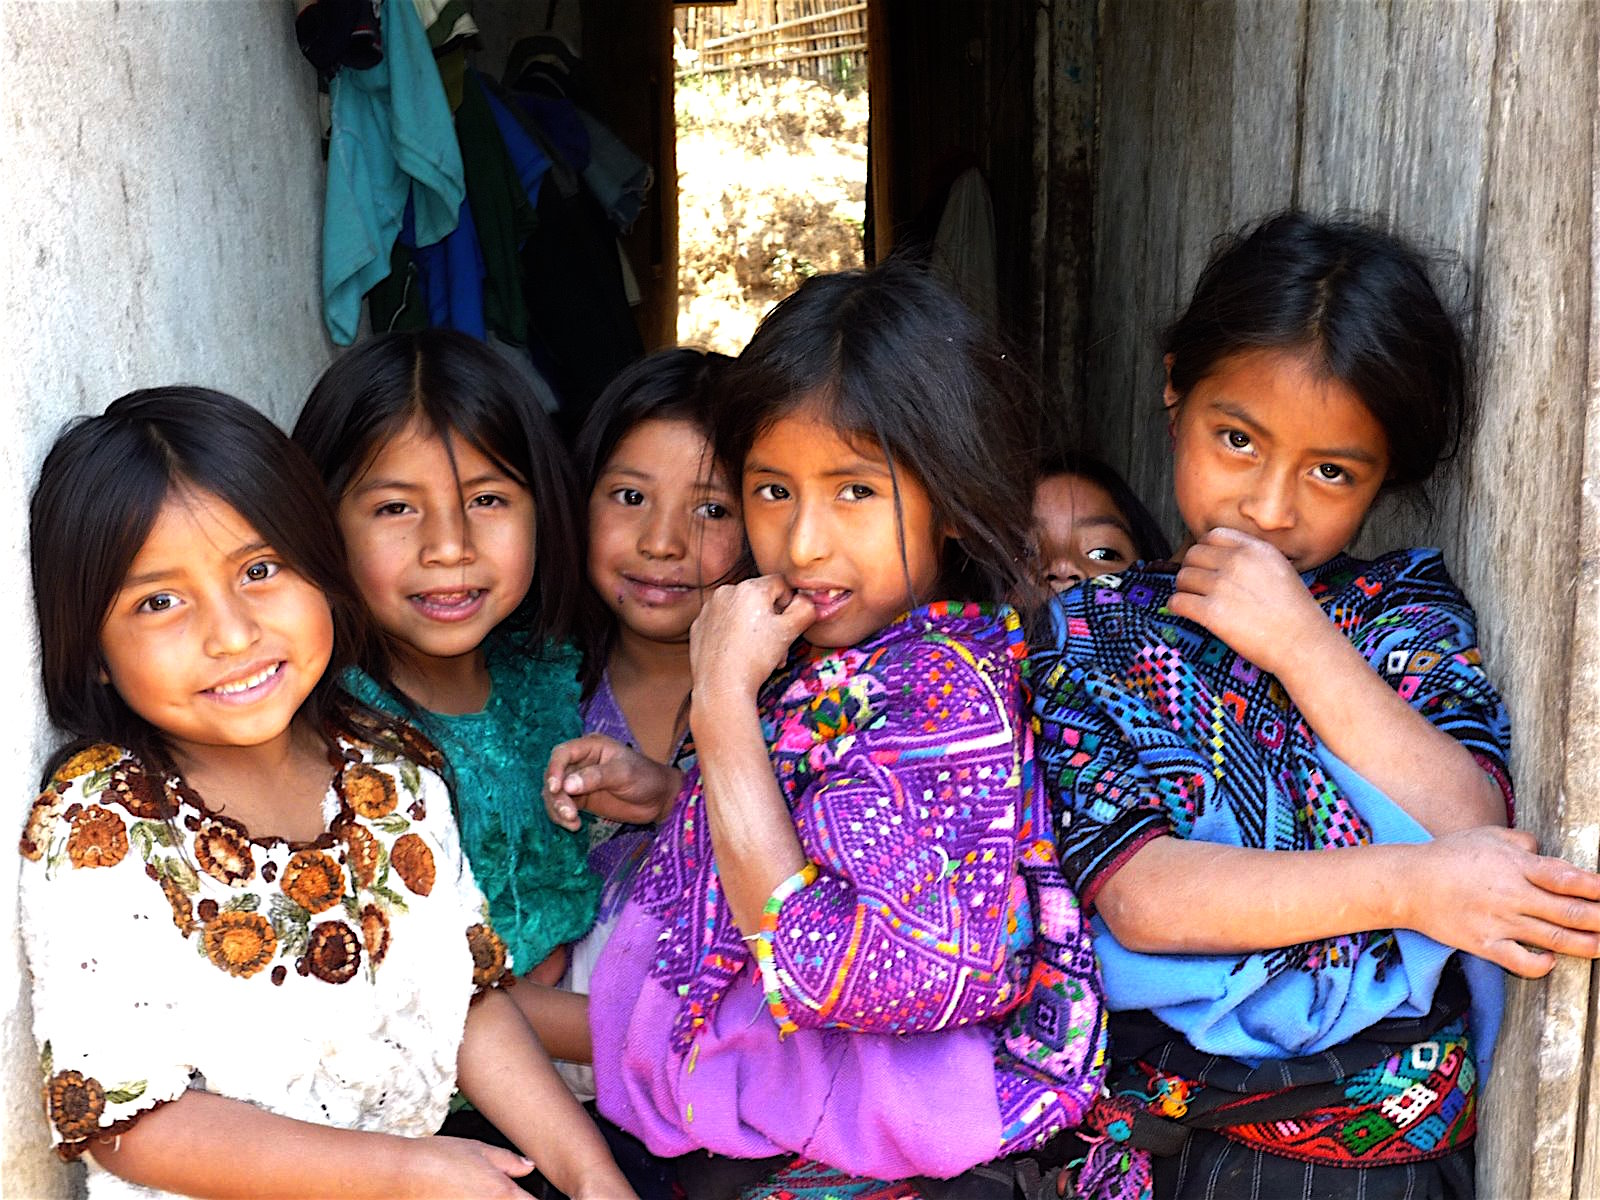 guatemala children why poor oppressed happy these rural fall america international wings guatemalan edited rutgers edu flickrcc vis roots courtesy